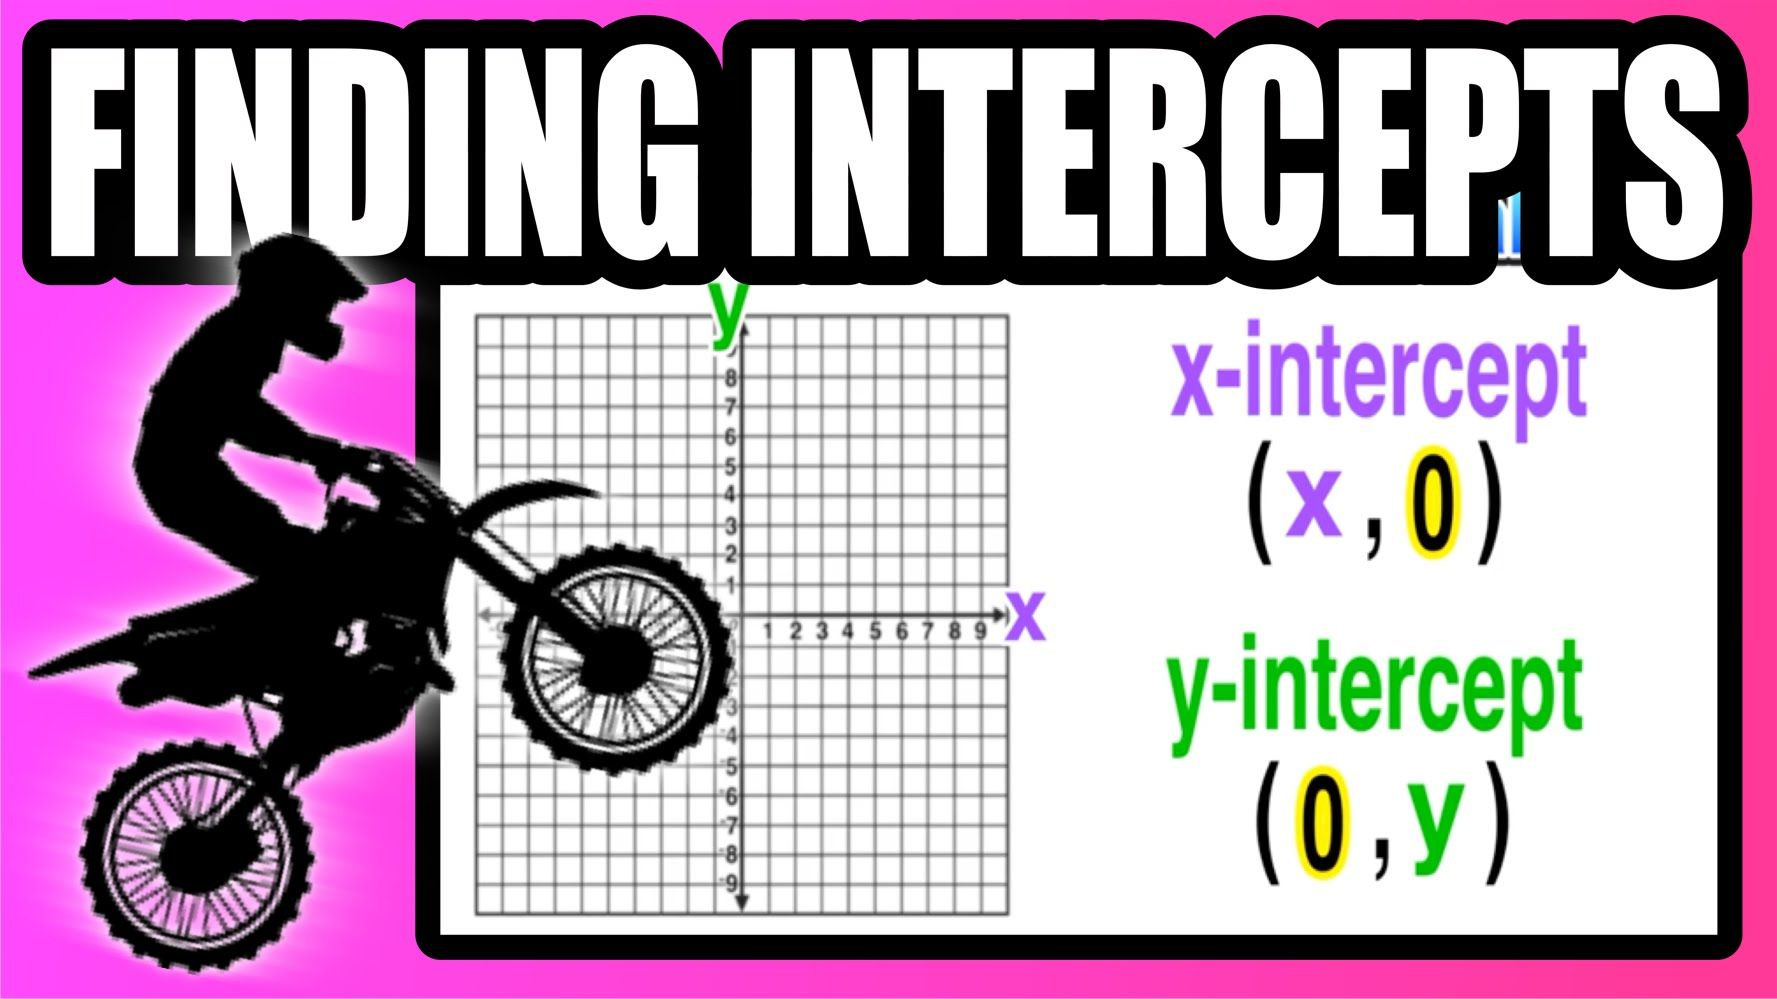 How Do I Find The X And Y Intercept Of A Function